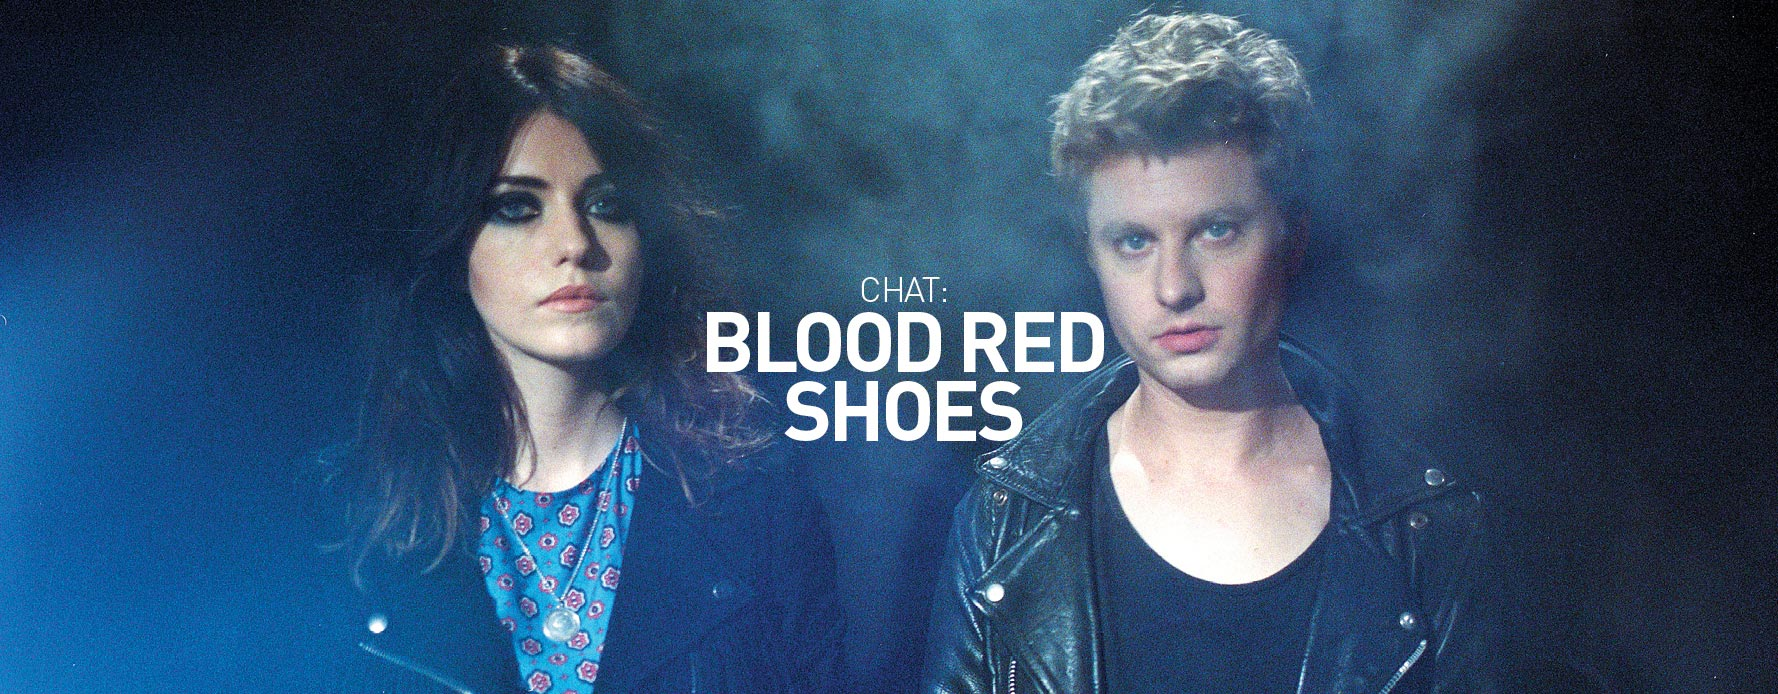 source: Blood Red Shoes